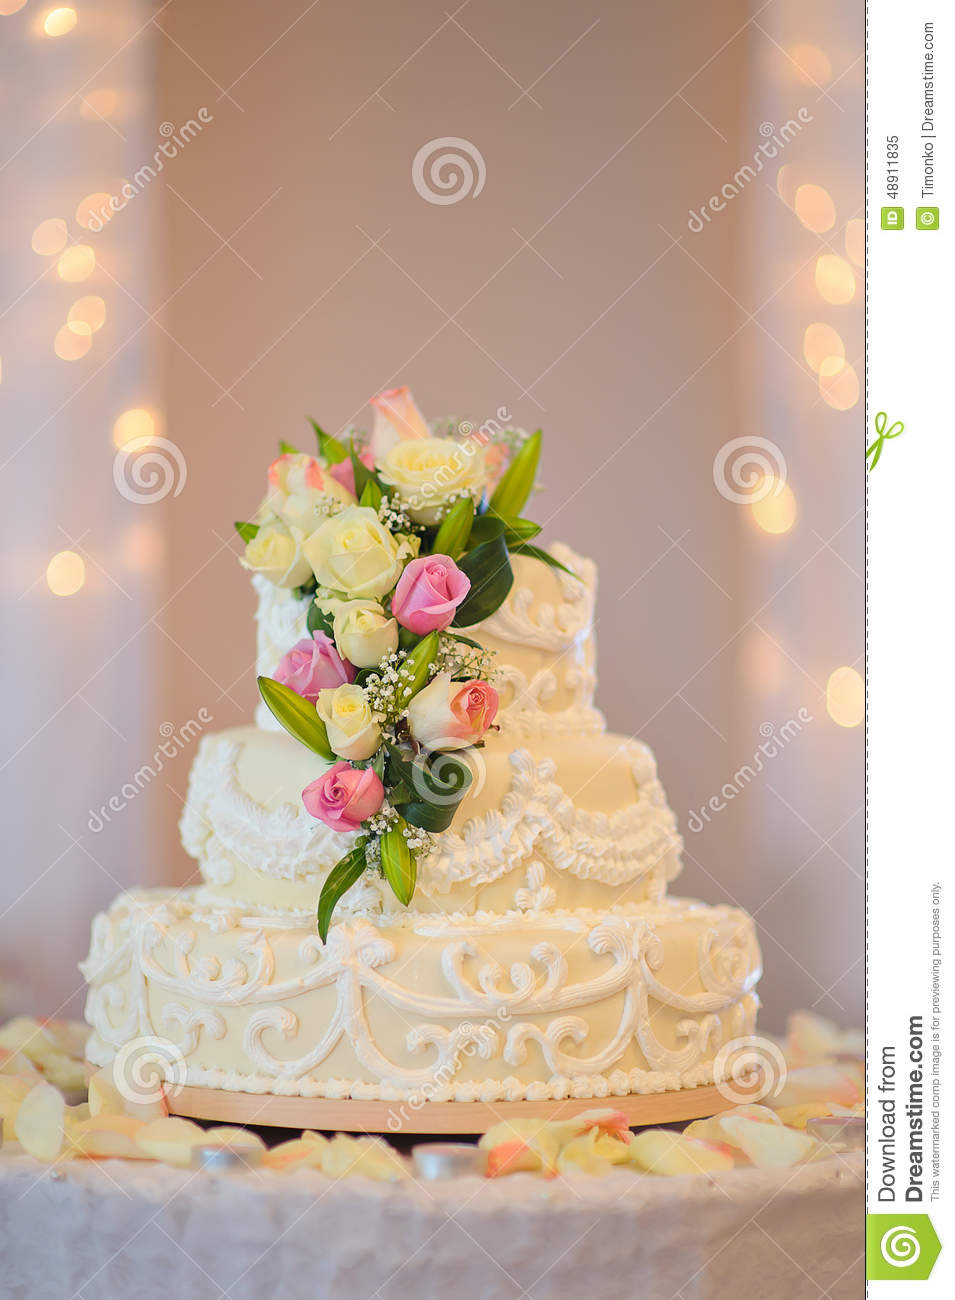 Traditional And Decorative Wedding Cake At Wedding Reception Stock ...